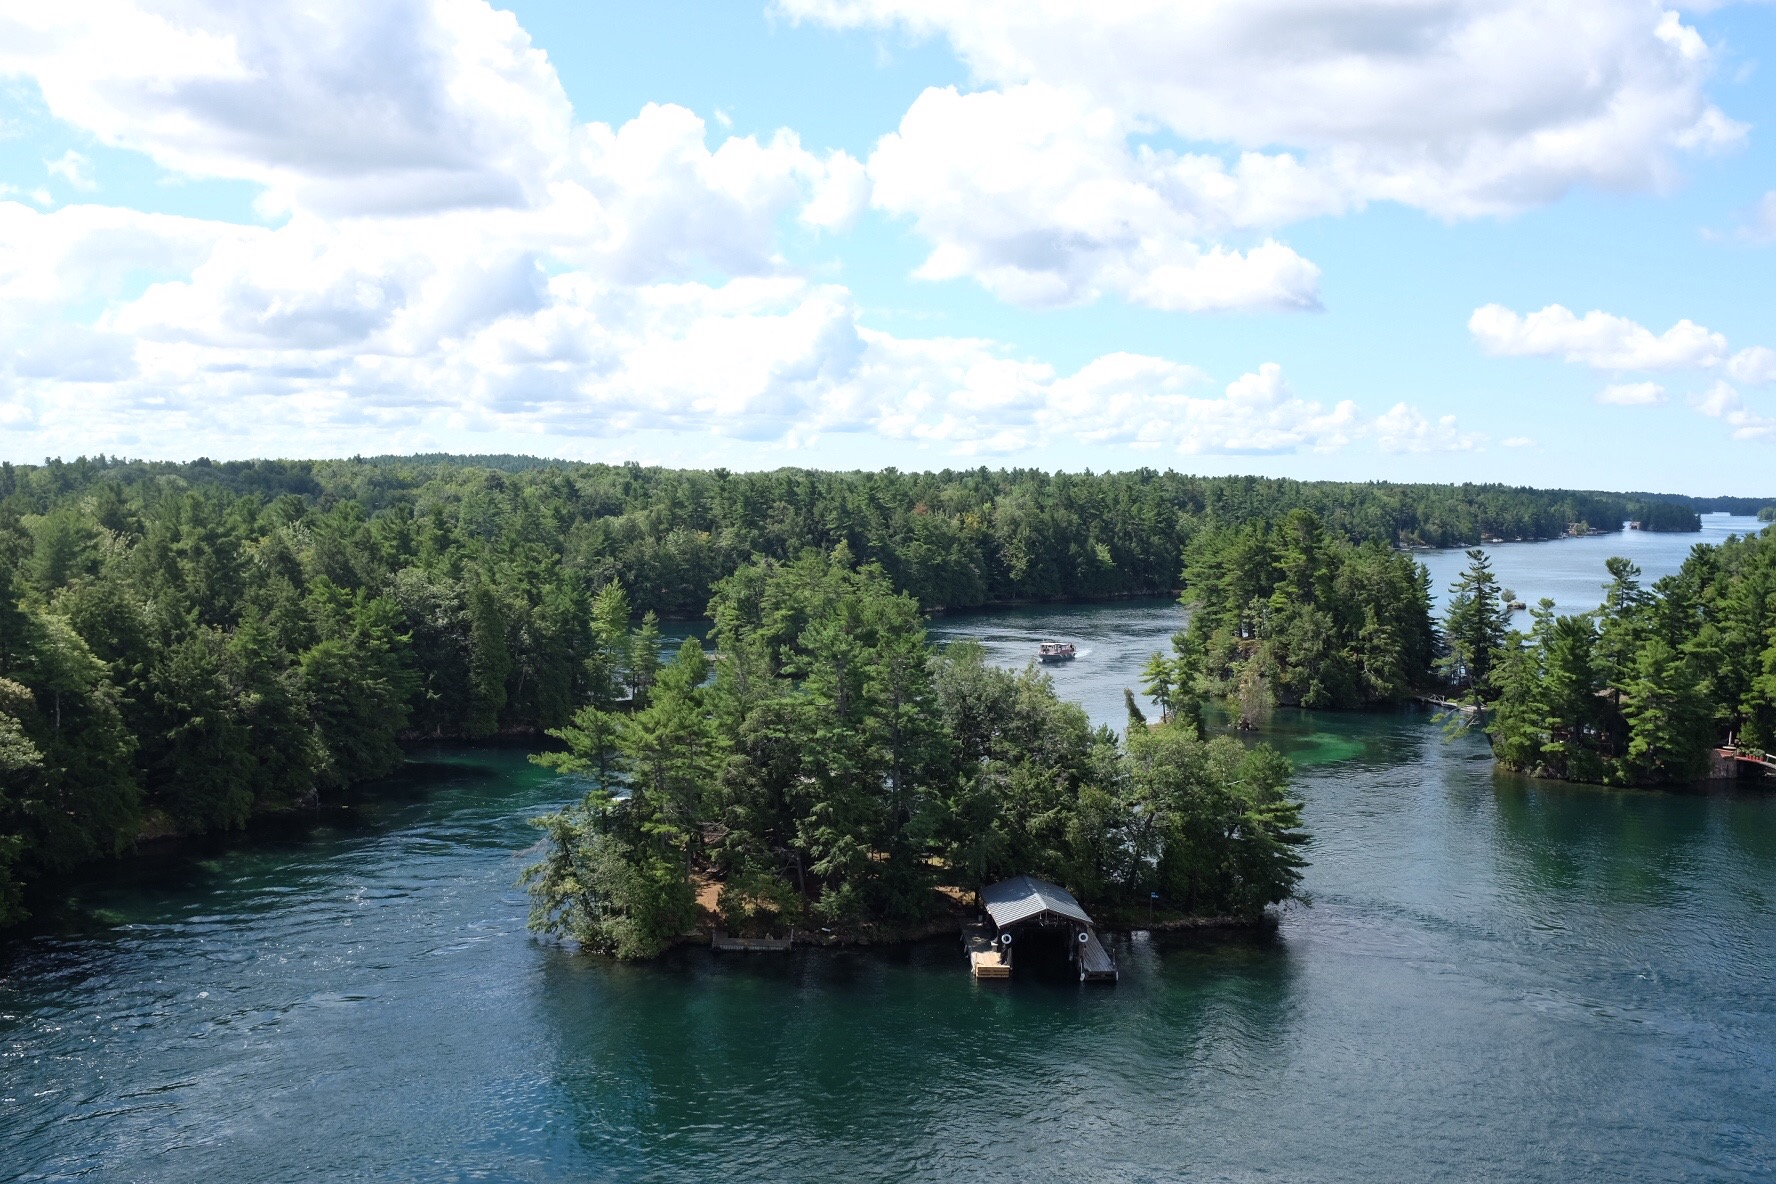 free online personals in thousand island park Rules and regulations of thousand  the entire park operation season in thousand islands national park and other  cans on generator-free islands.